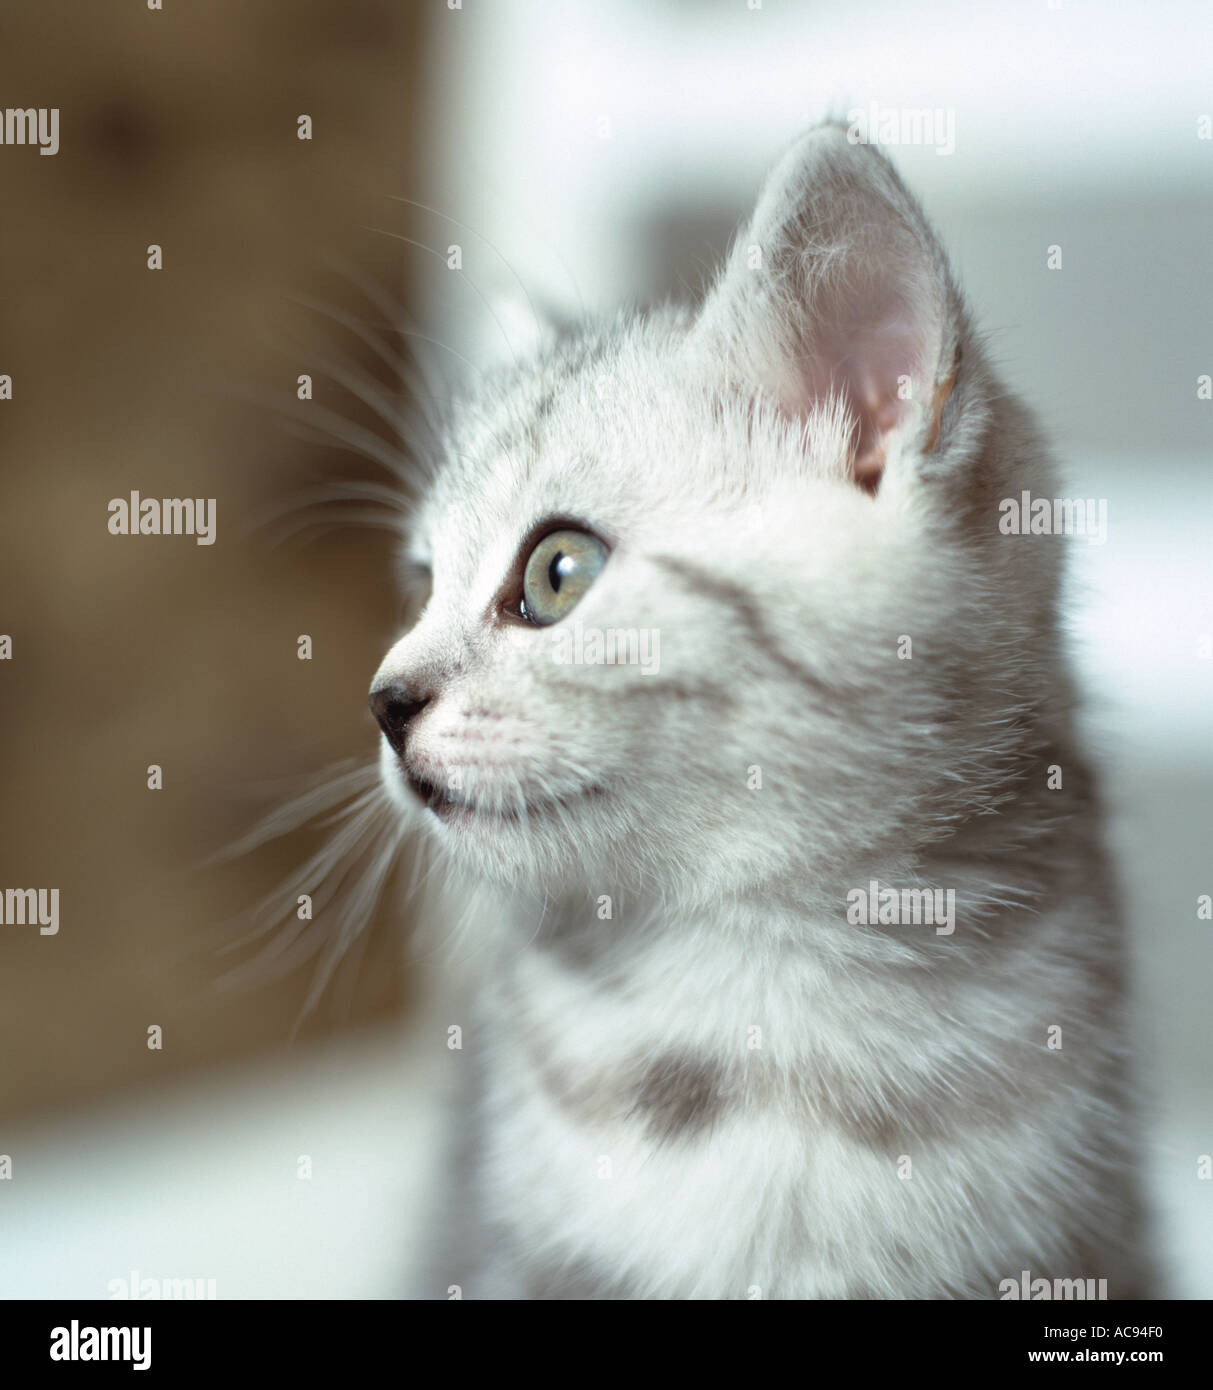 young kitten in profile - Stock Image